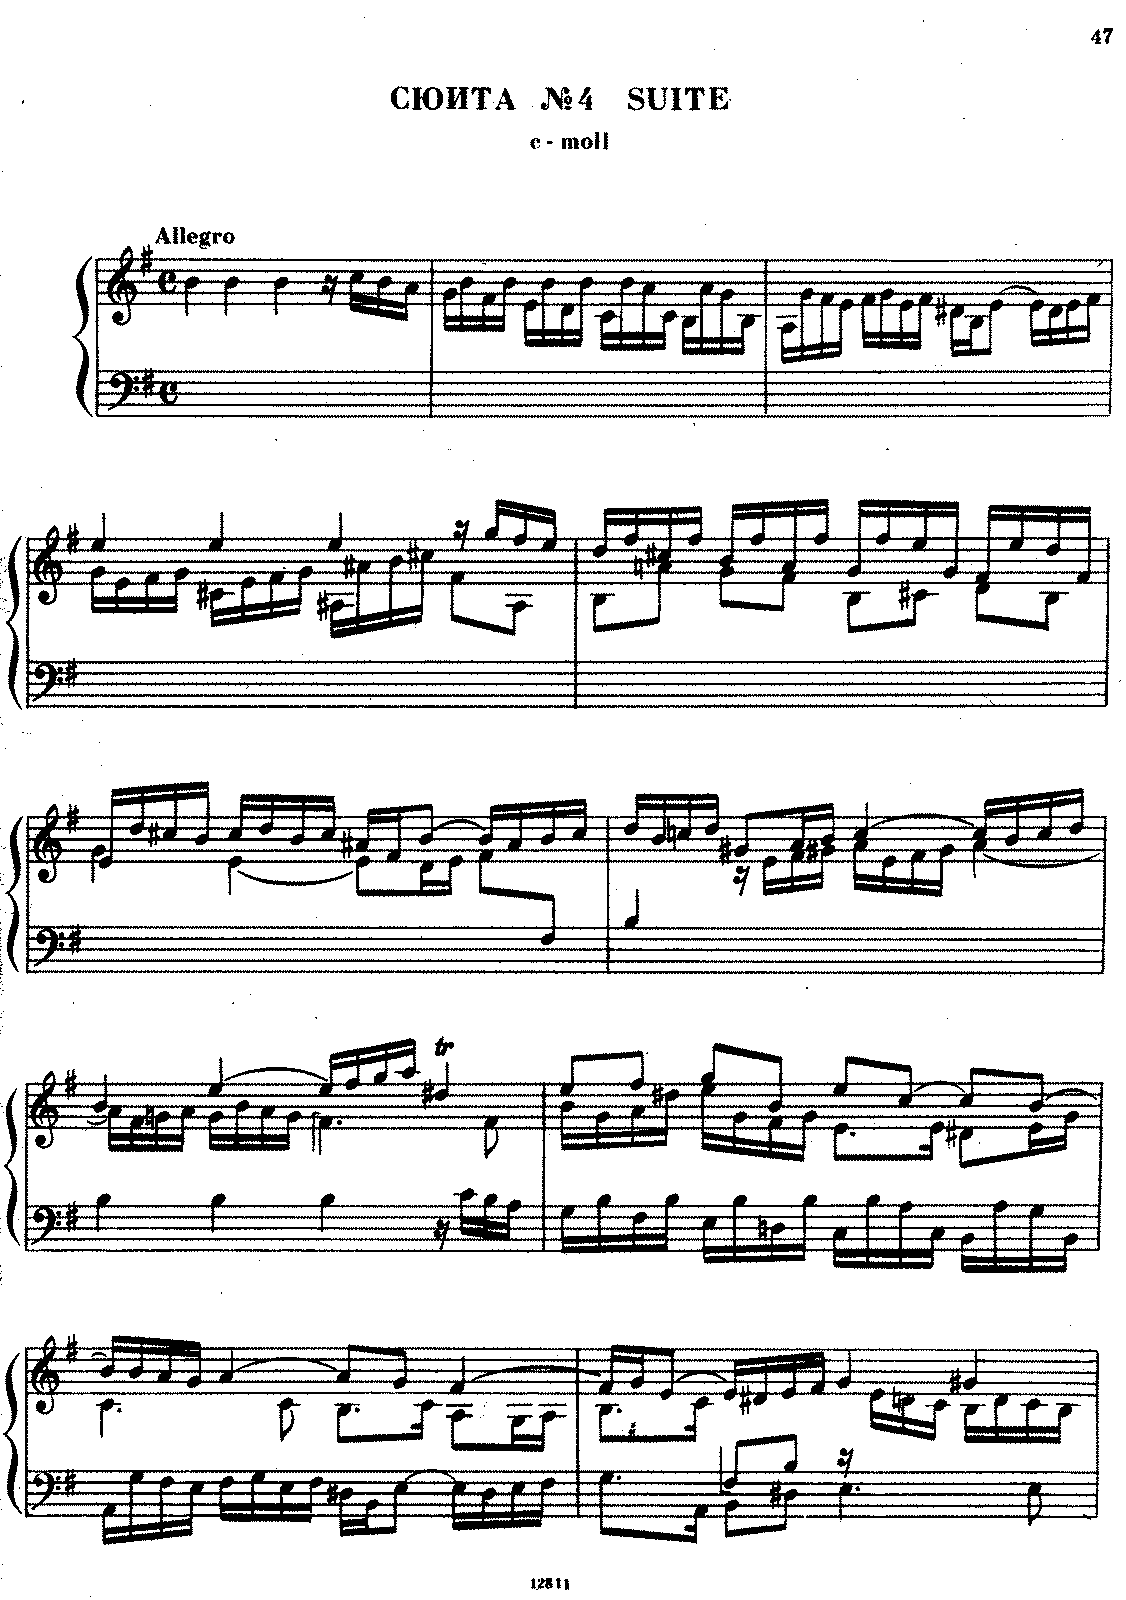 Handel - Suite No 4 in C minor.pdf